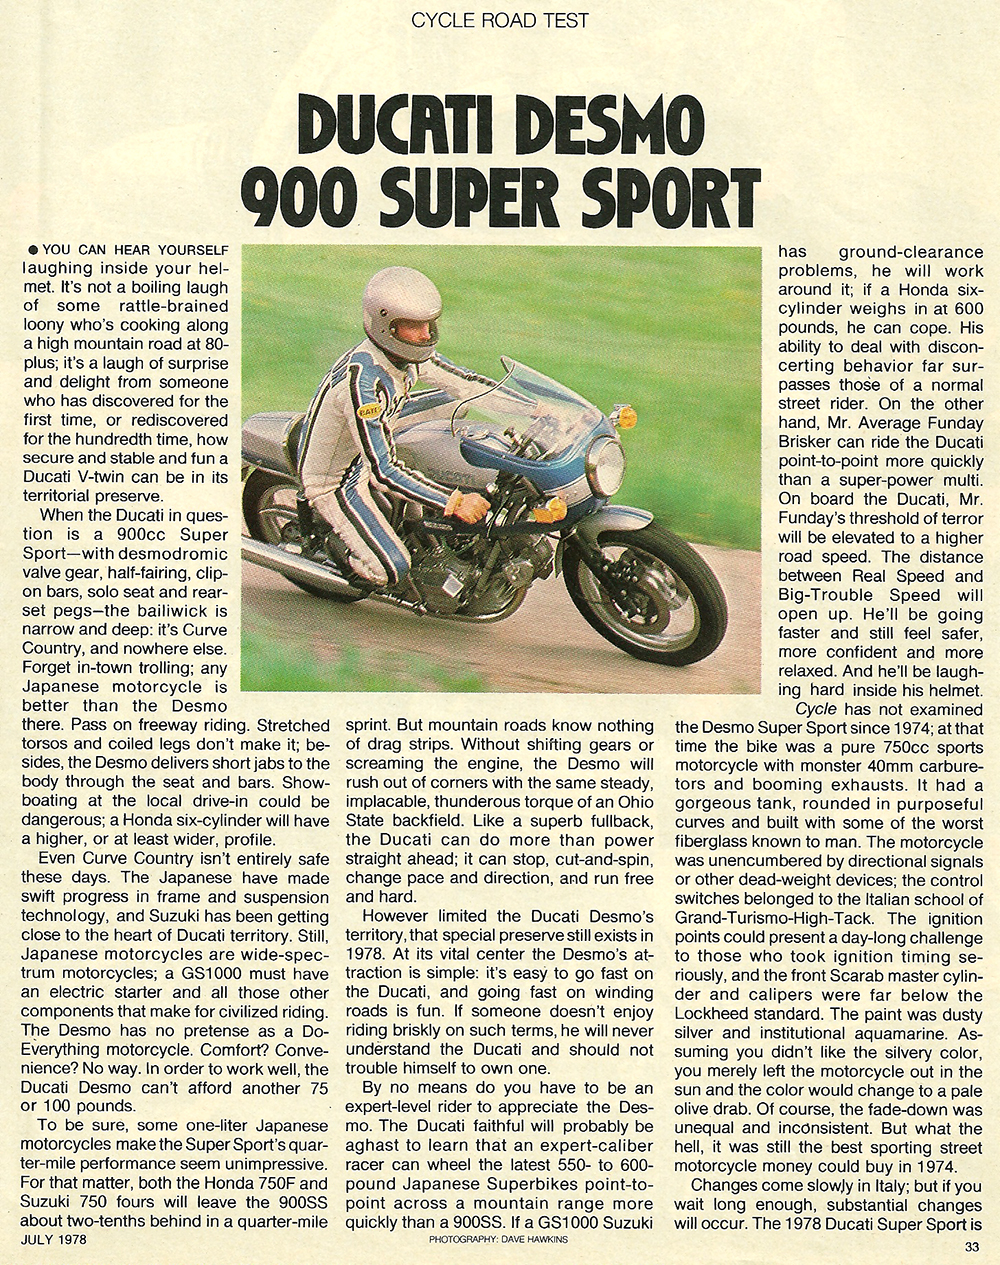 1978 Ducati Desmo 900 Super Sport road test 02.jpg